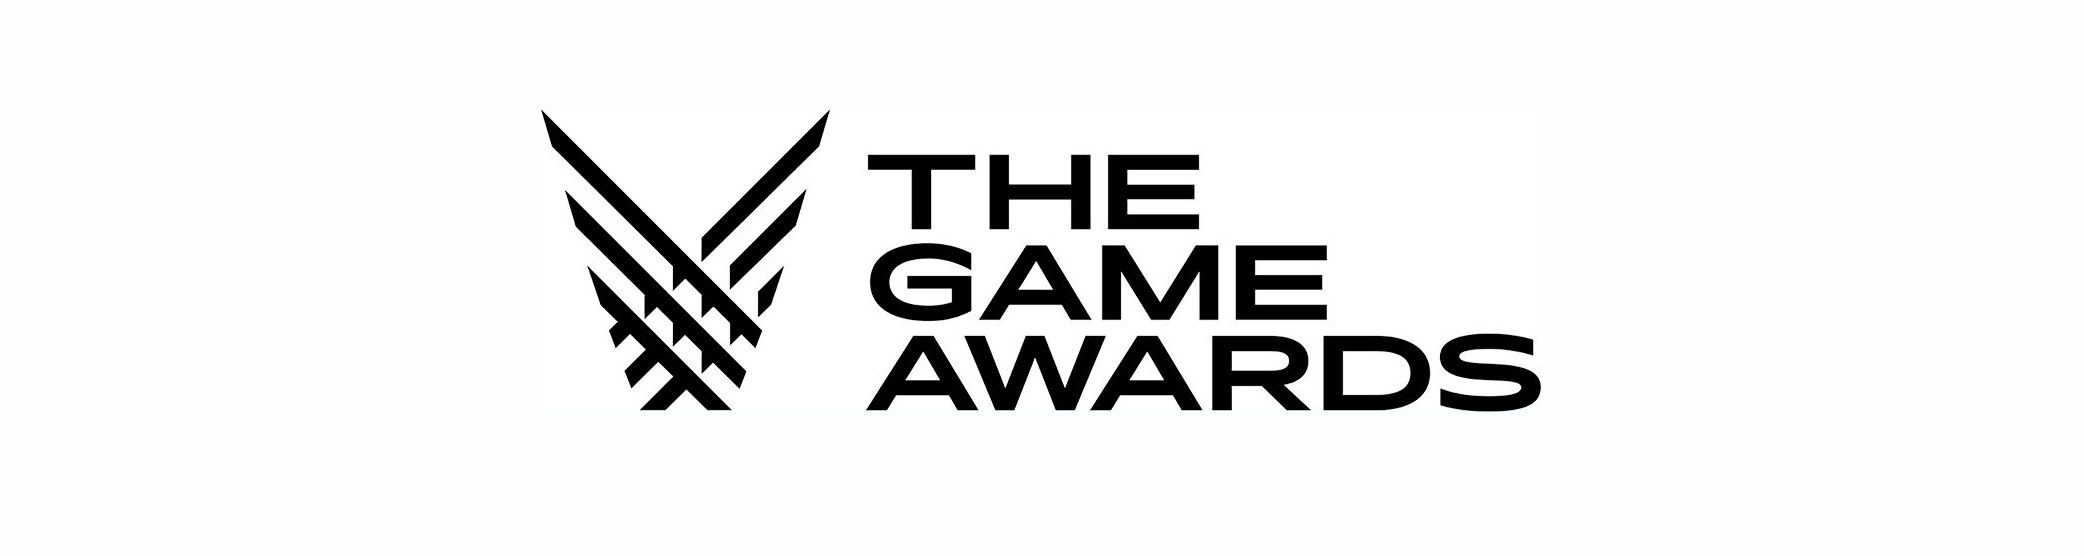 The Game Awards To Return On December 6 With The Promise